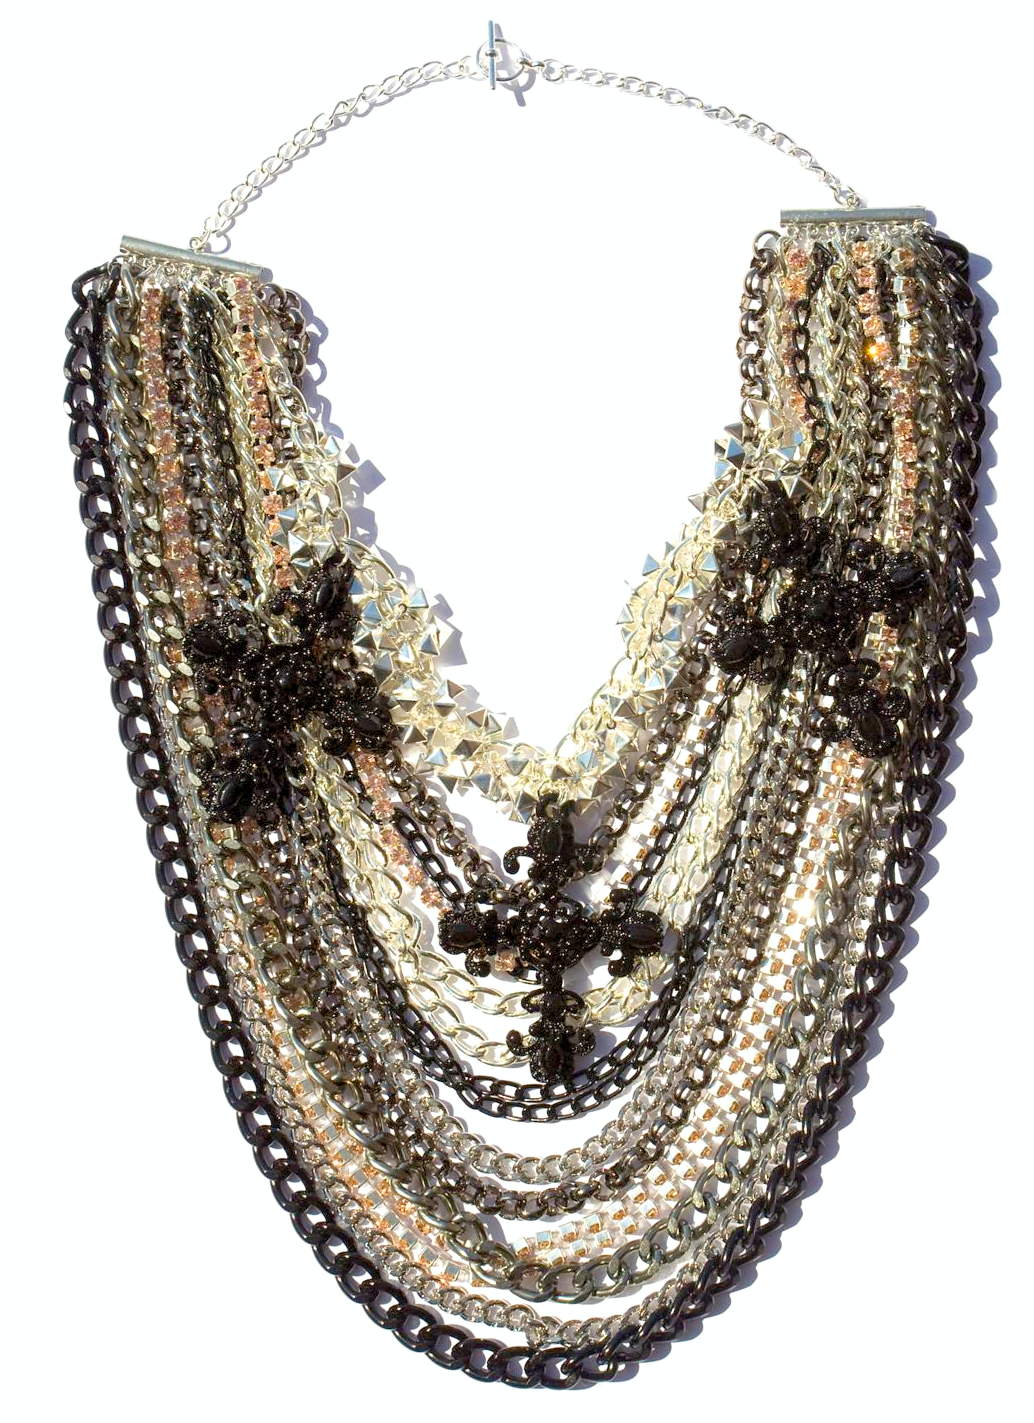 Assad Mounser -Starman Collar at Kabiri